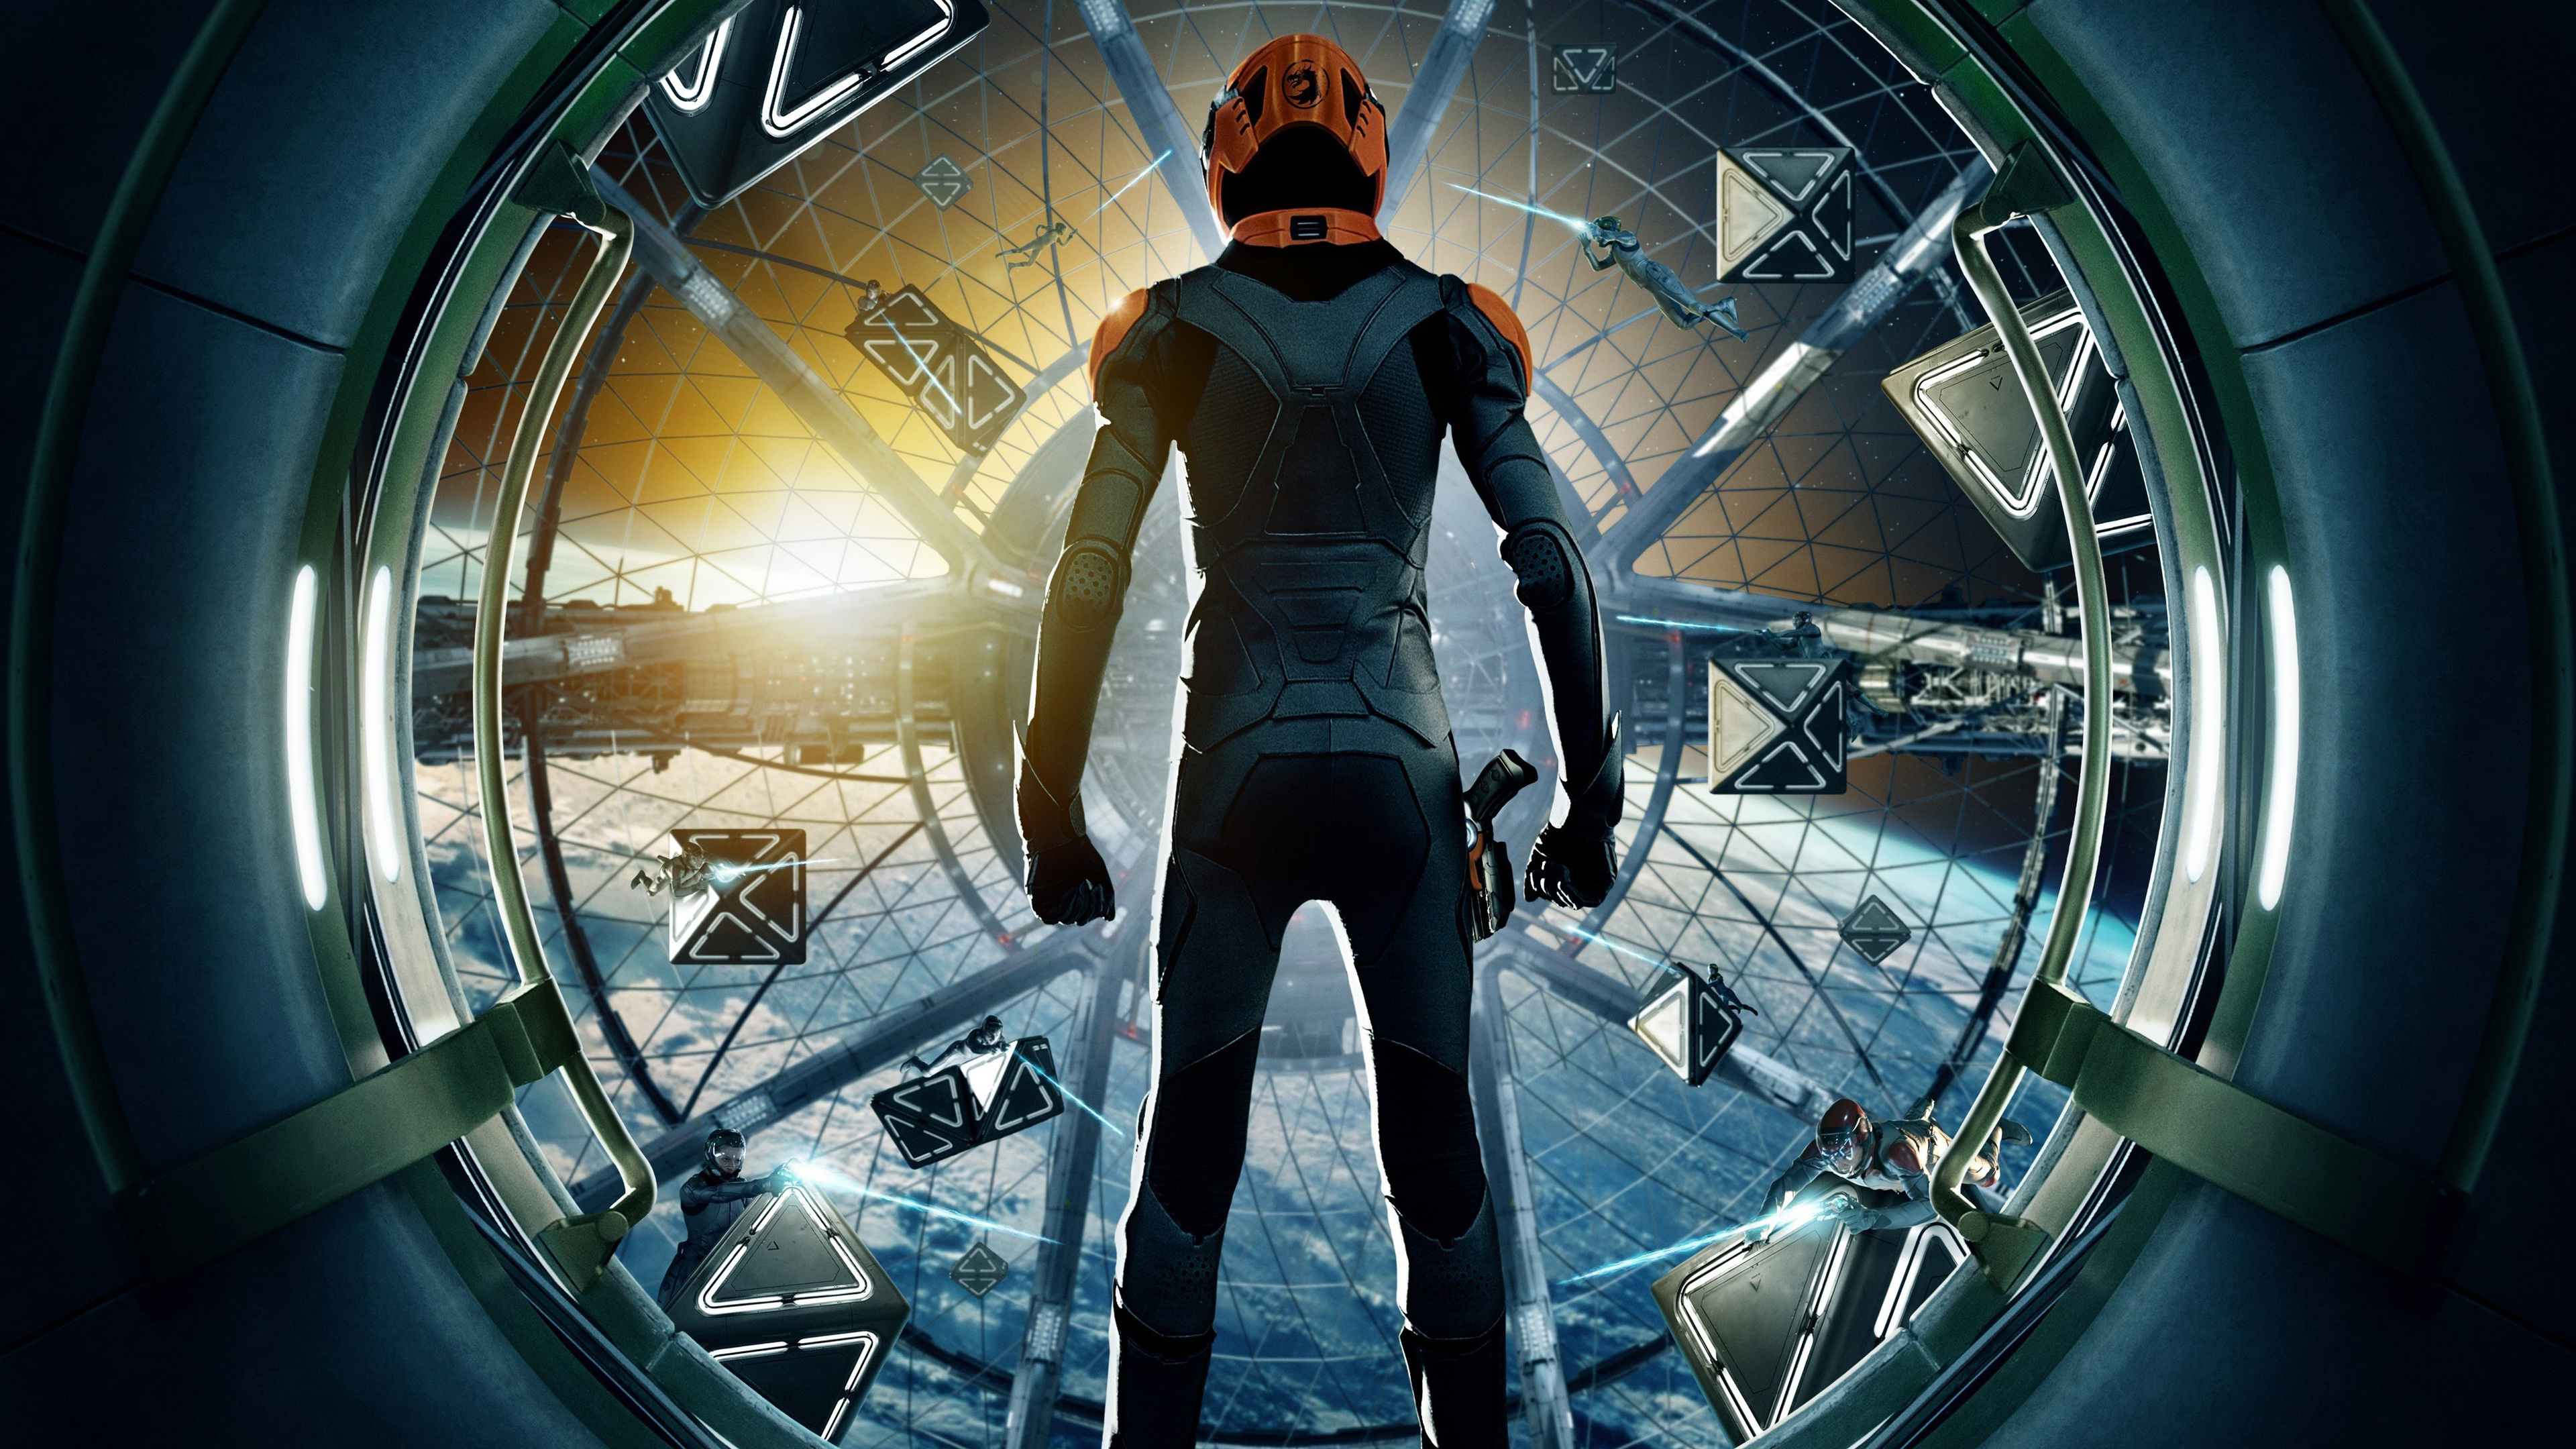 enders game 4k 1537645770 - Enders Game 4k - movies wallpapers, hd-wallpapers, enders wallpapers, 4k-wallpapers